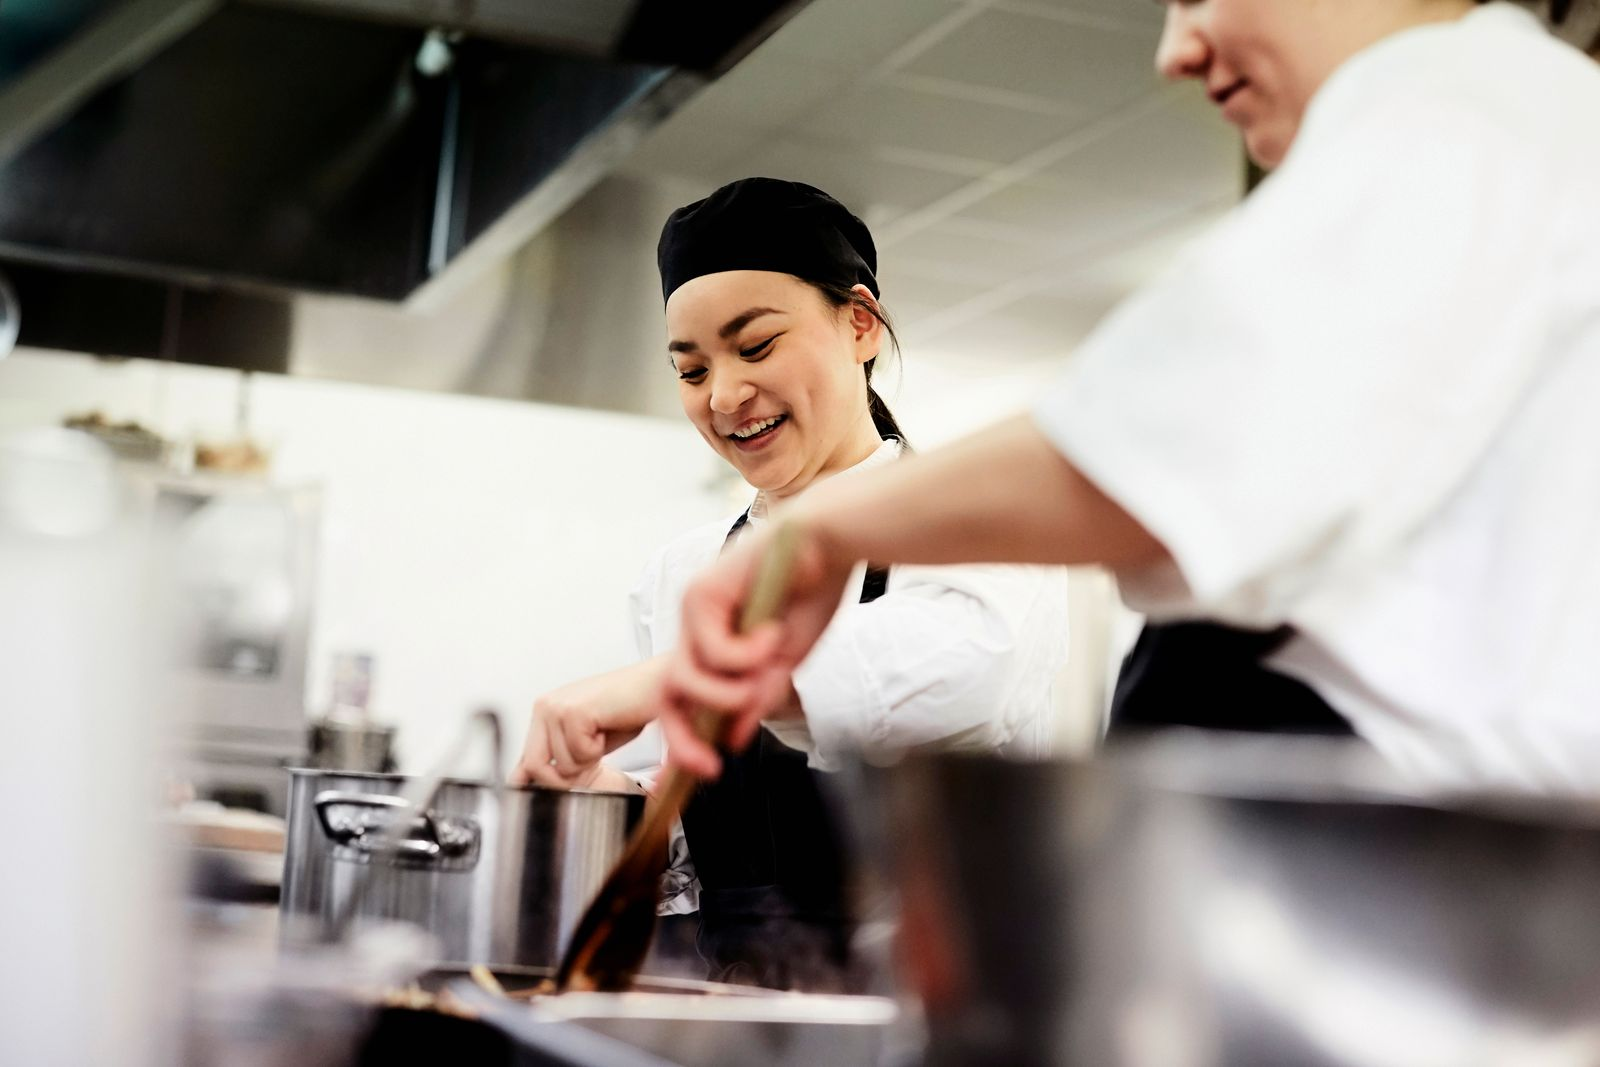 Smiling female chef student with colleague cooking food in commercial kitchen